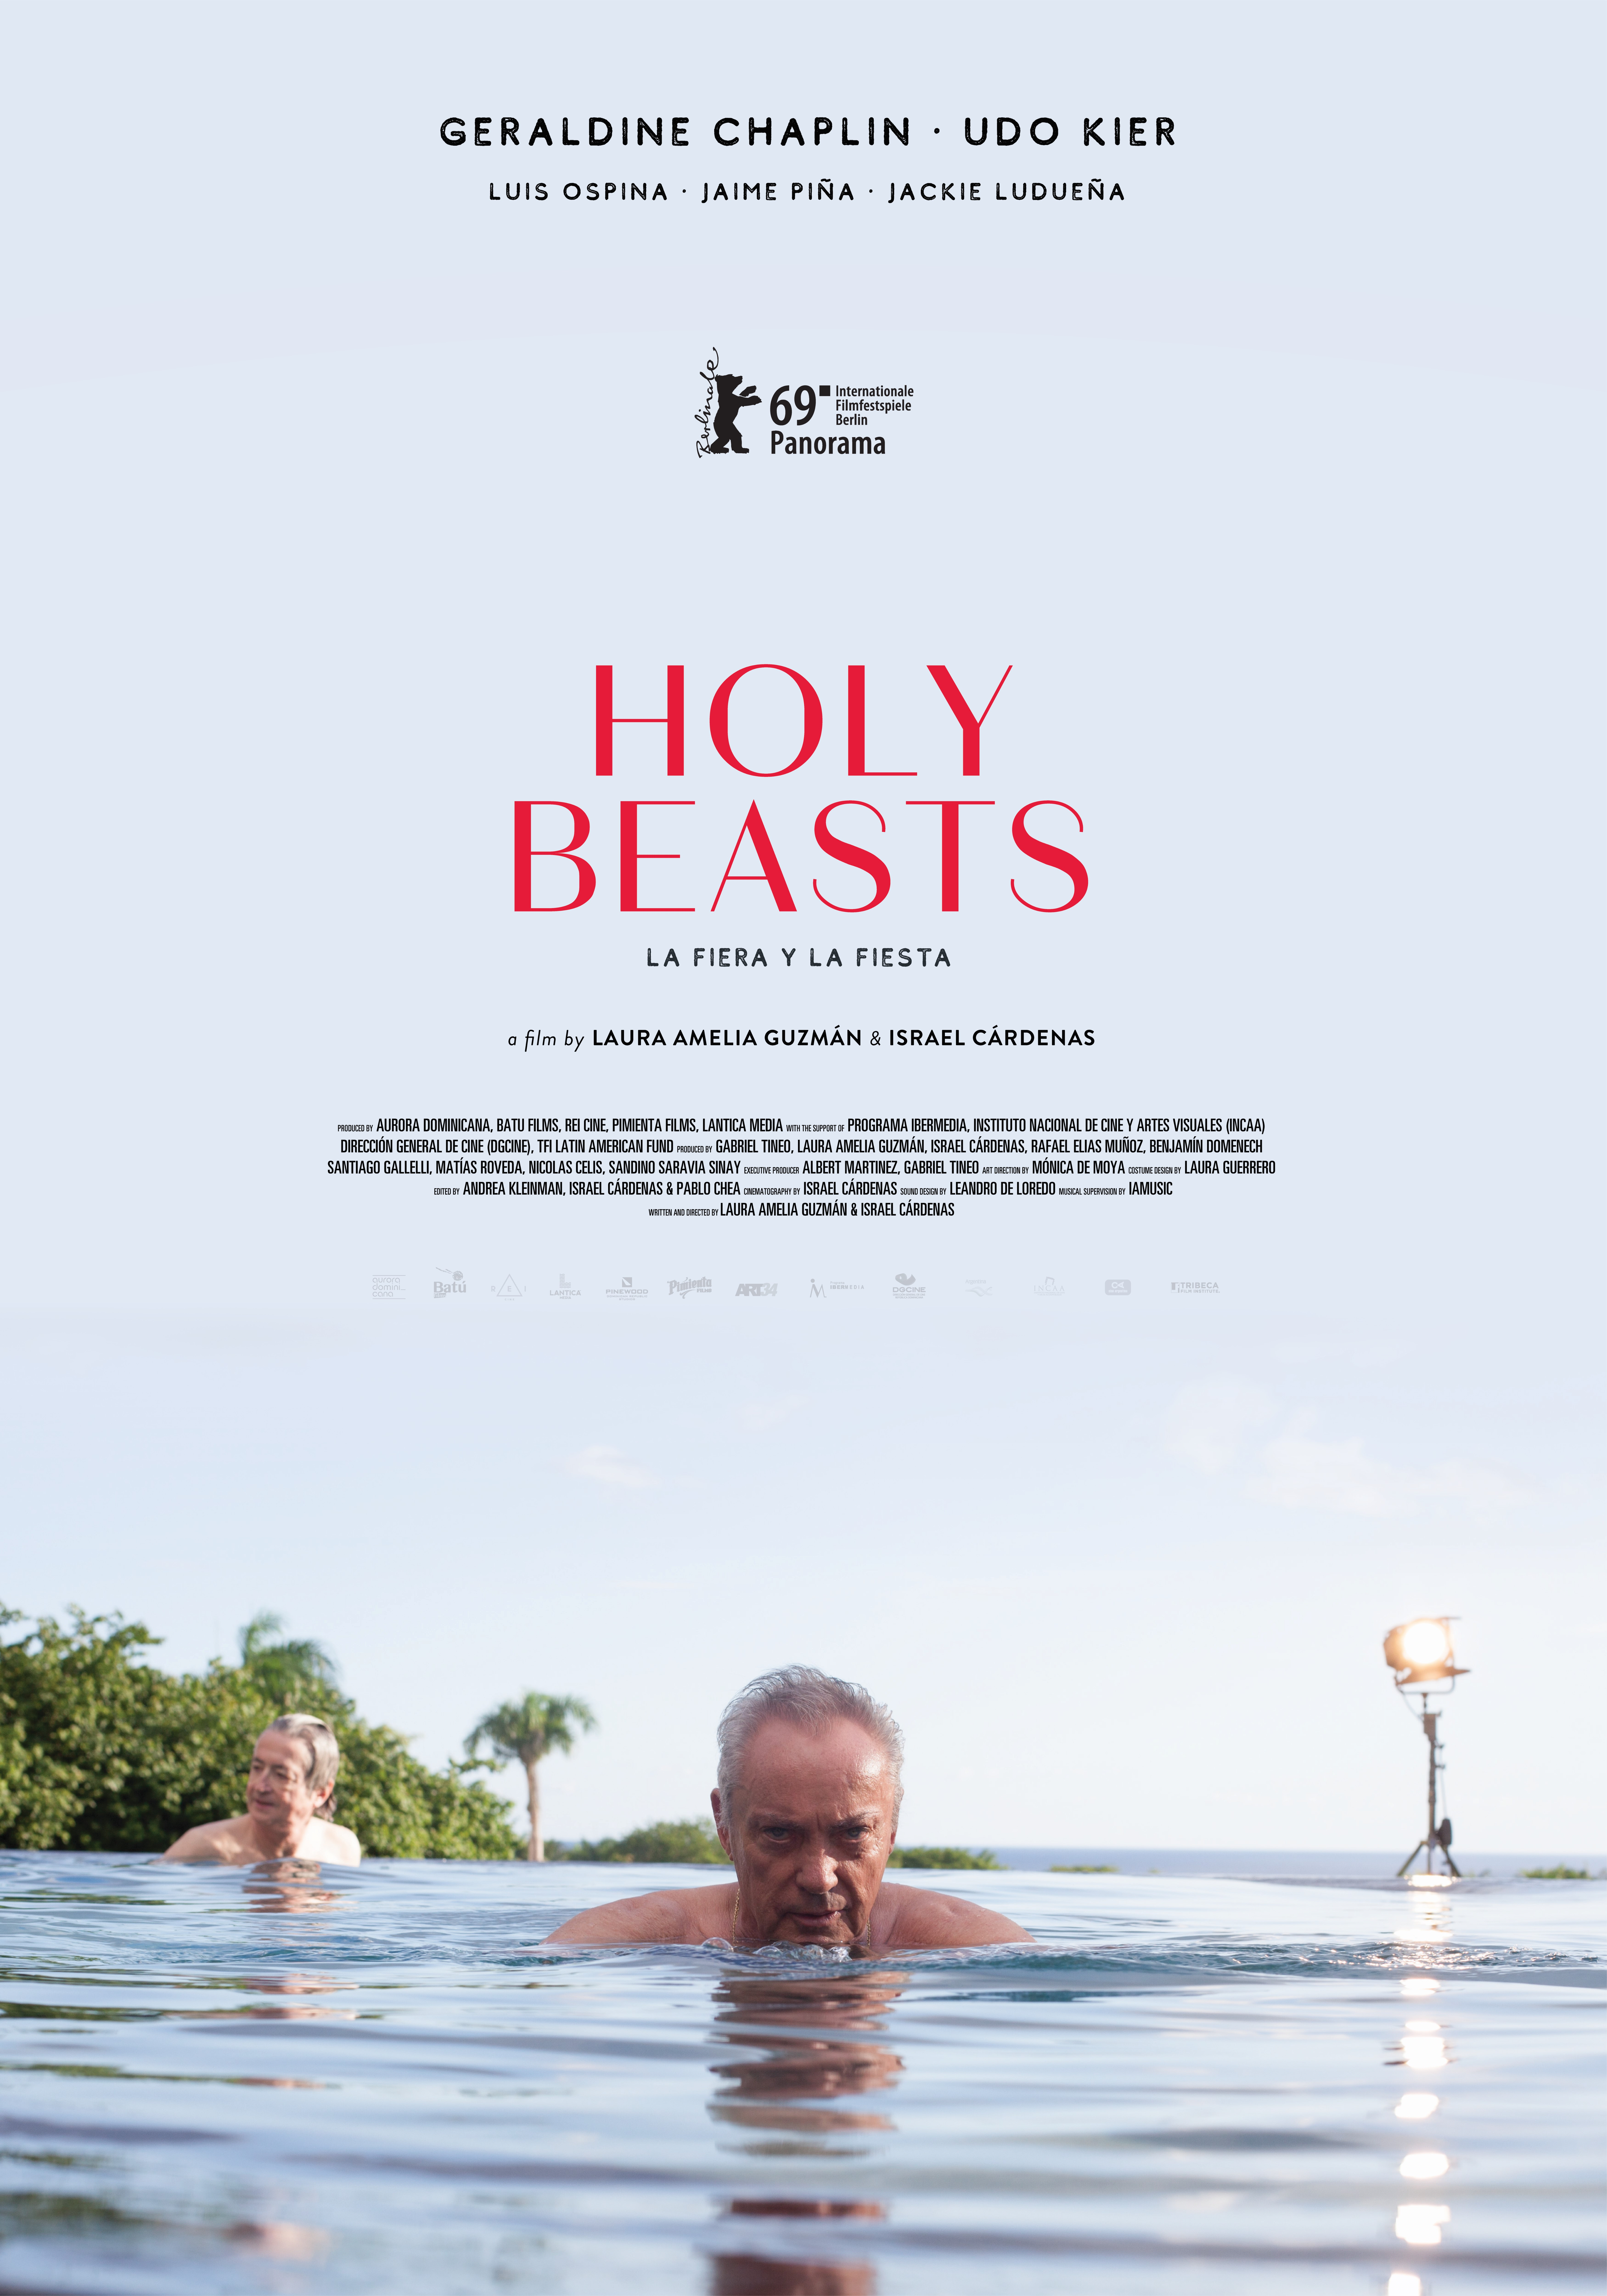 Udo Kier and Luis Ospina in Holy Beasts (2019)